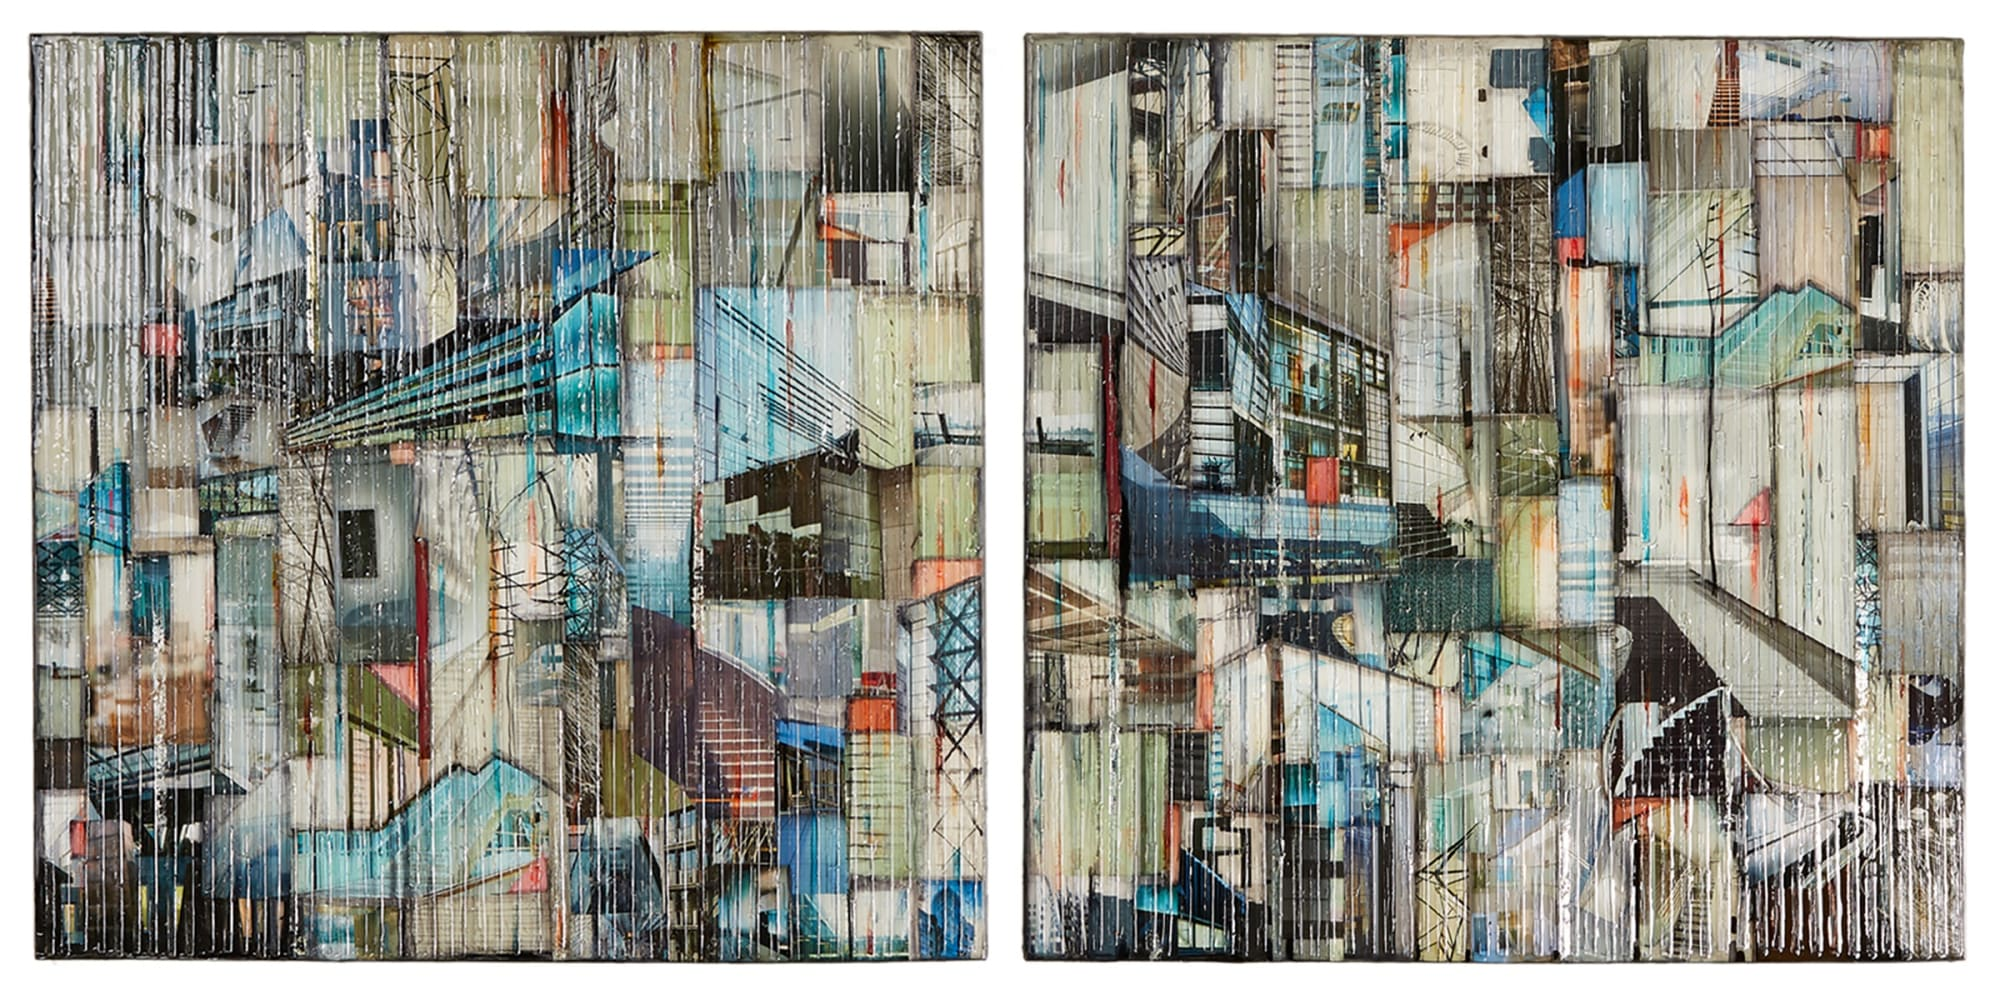 Madonna Phillips: Water Falling Diptych